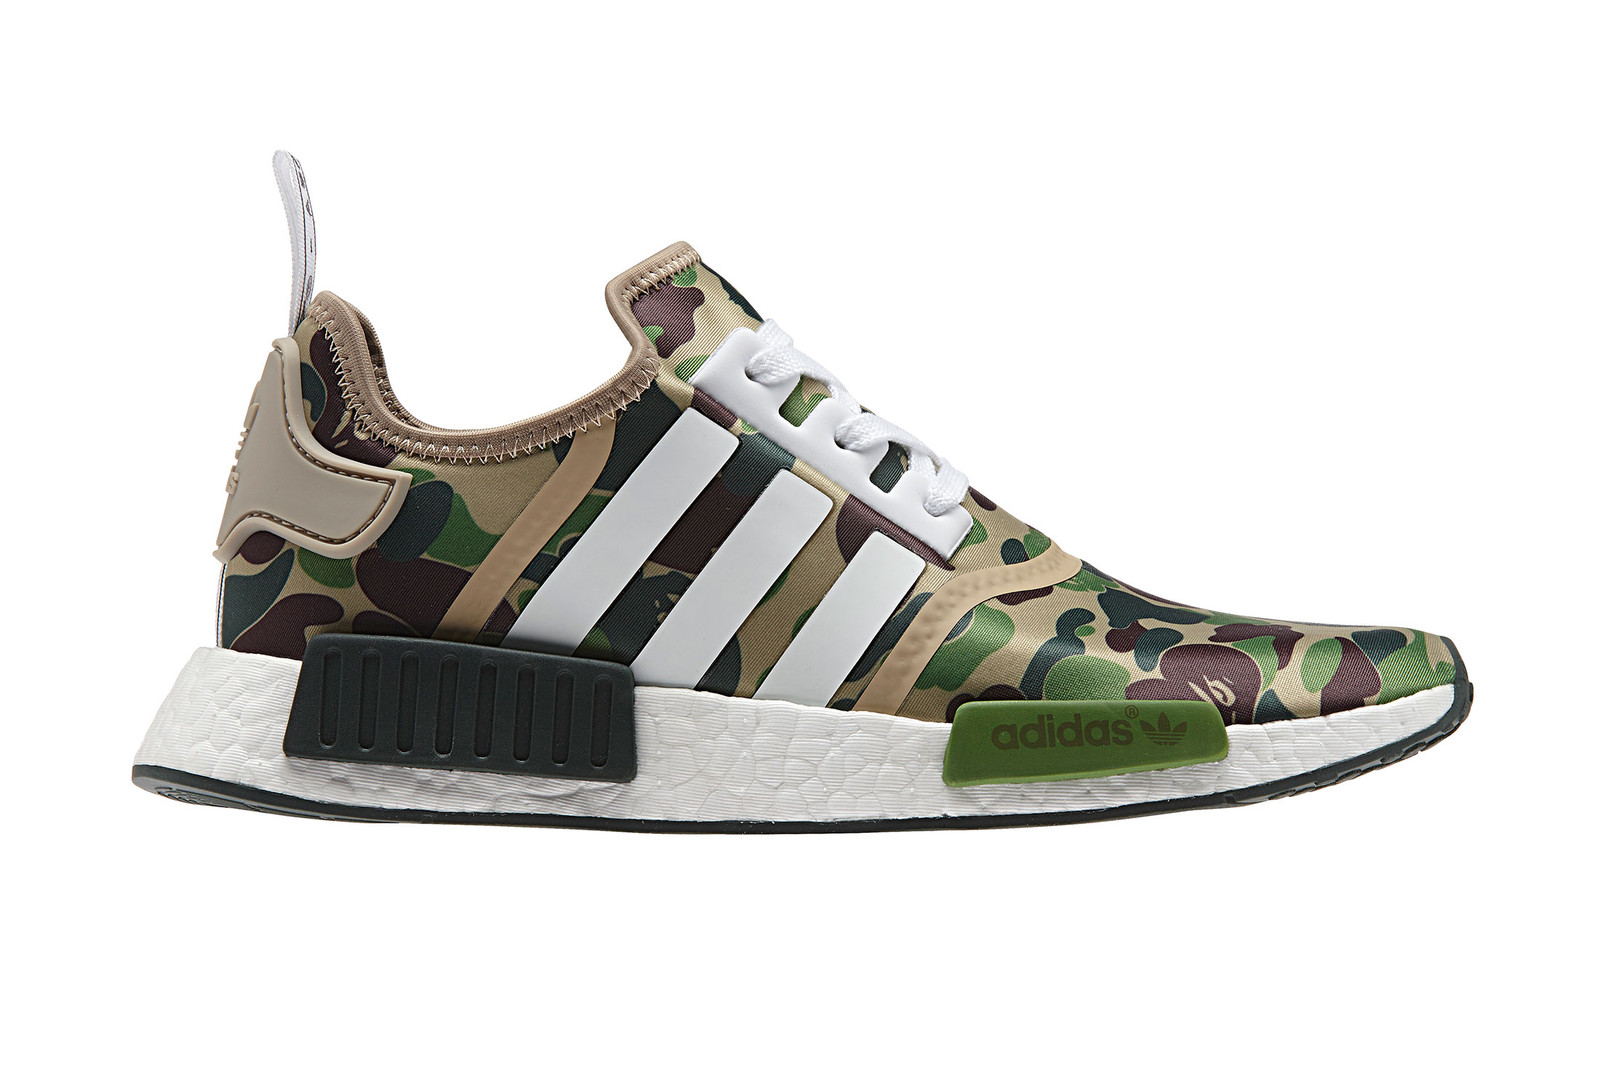 bape-adidas-originals-fall-winter-2016-collection-0